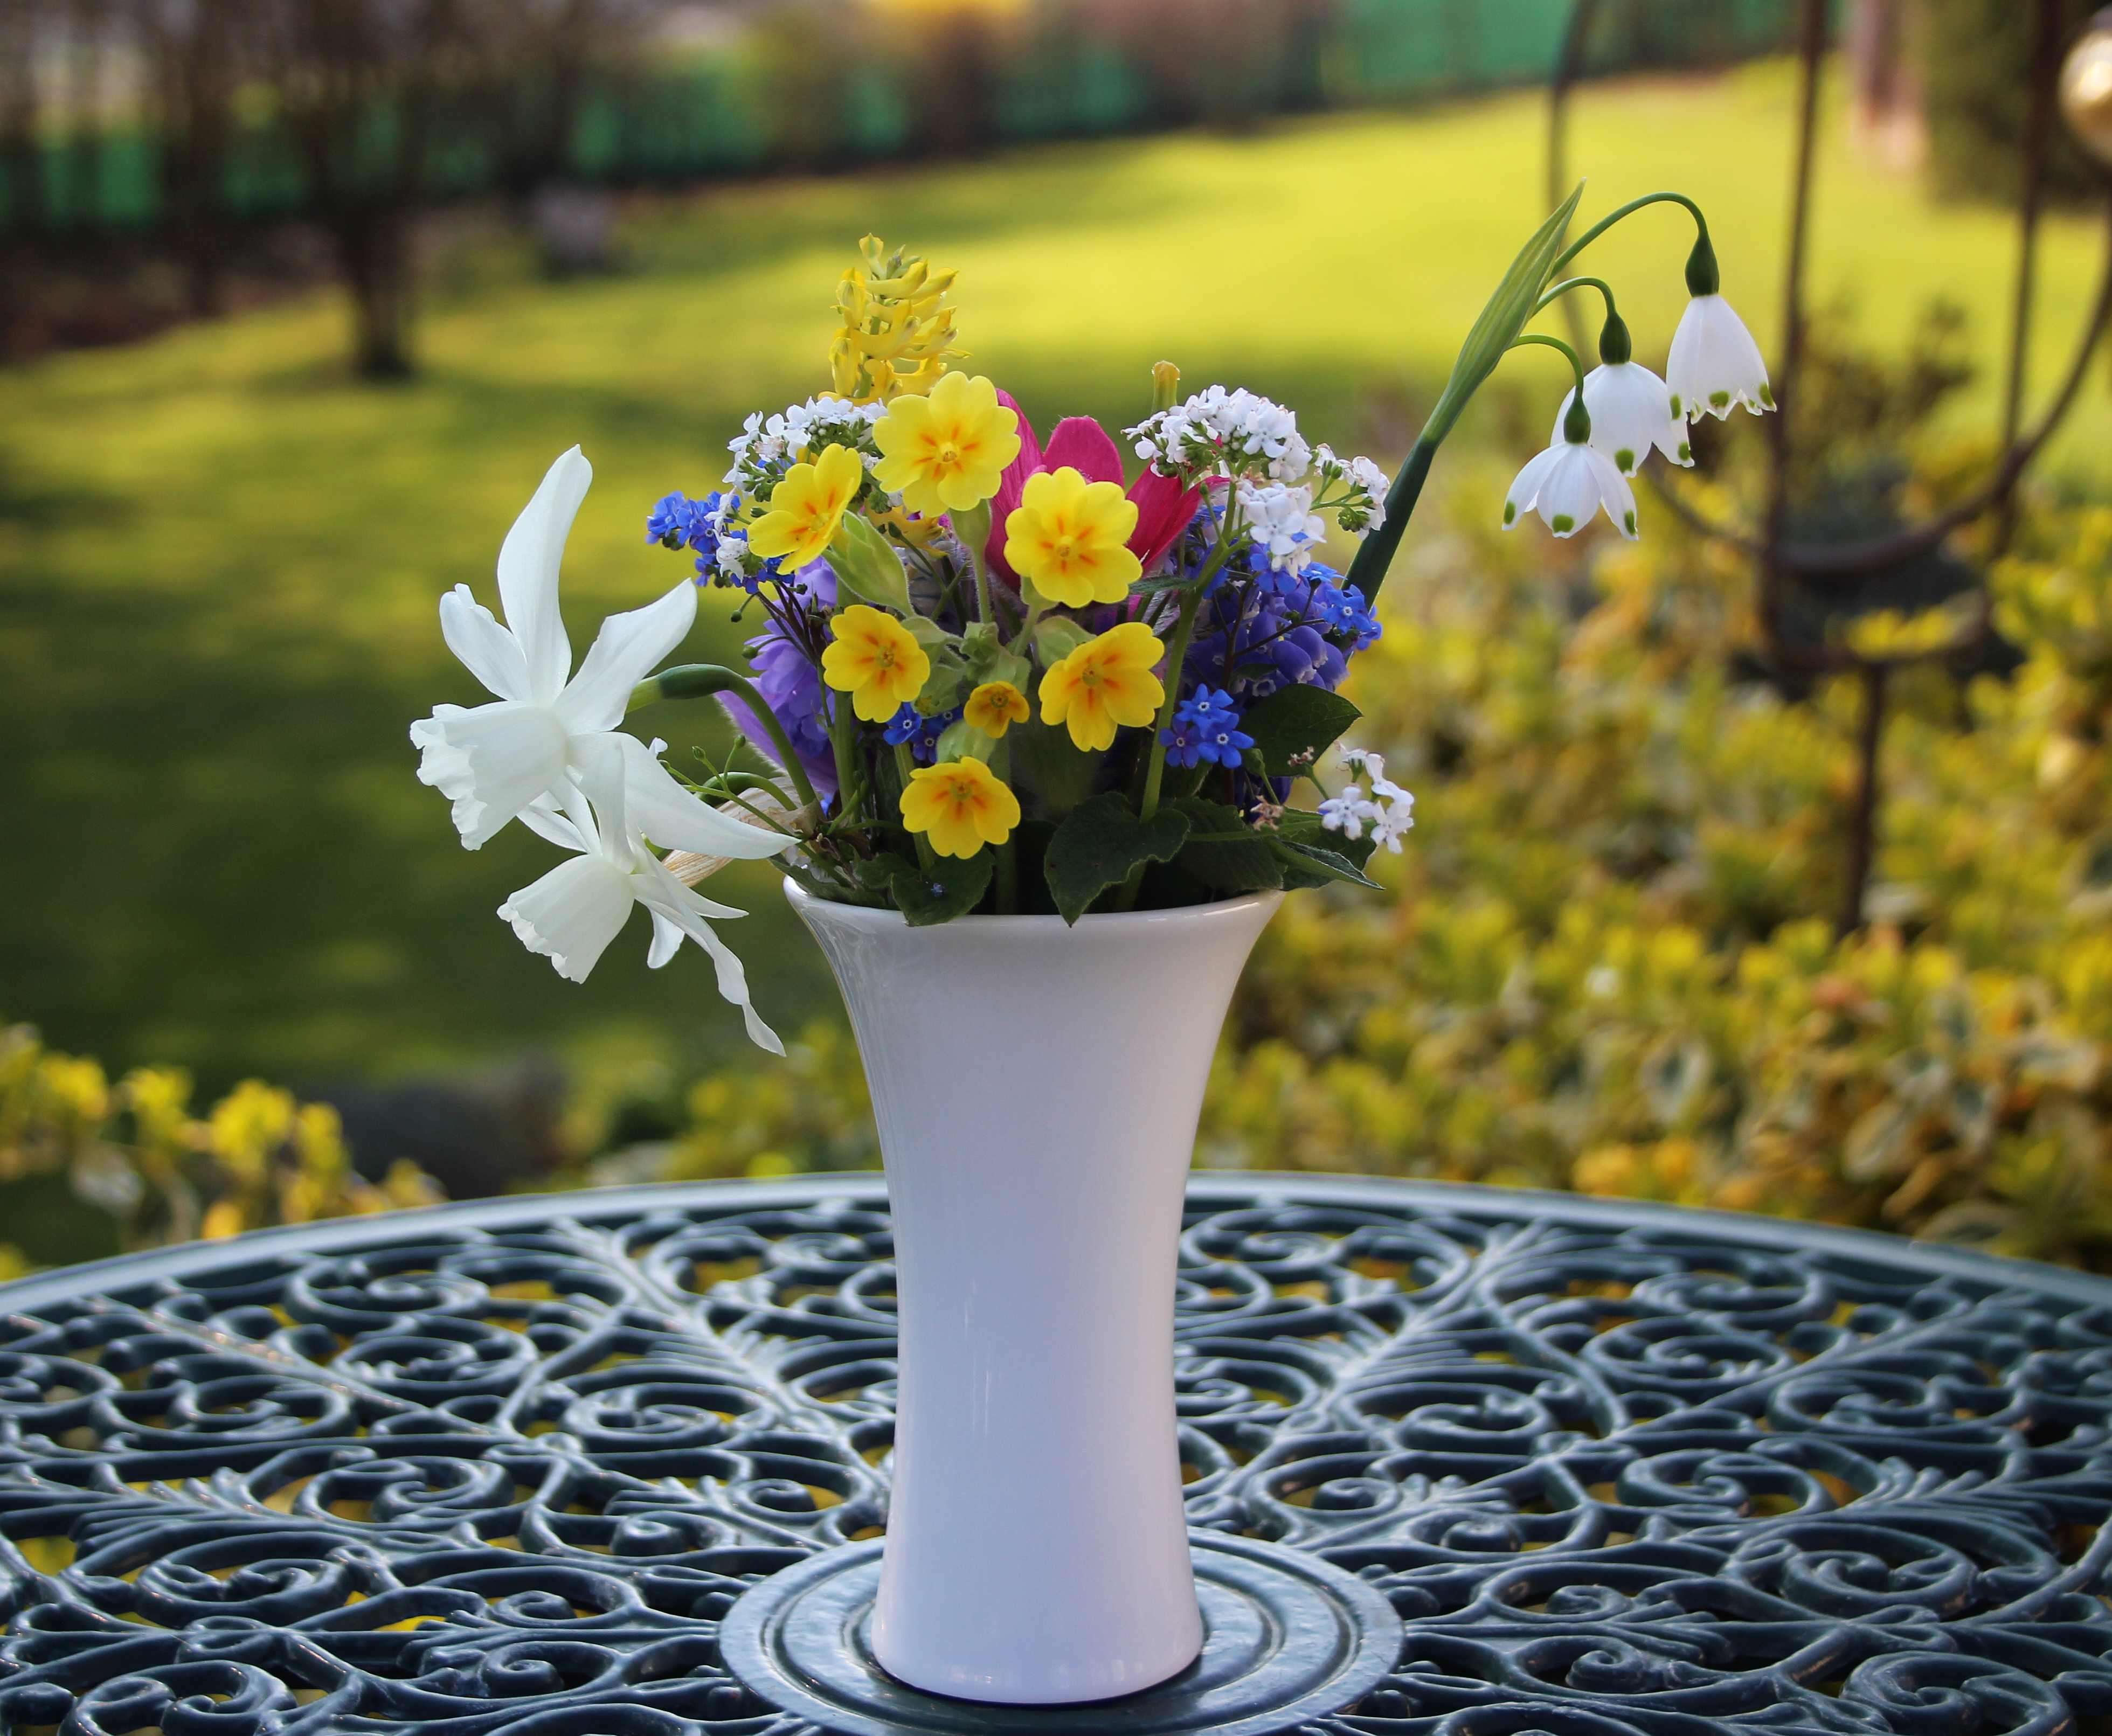 Flowers by post vase - Short And Sweet Refers Not Only To My Post Time Has Got The Better Of Me Today But Also To The Flowers The Narcissi Smell Gorgeous And The Stems Of